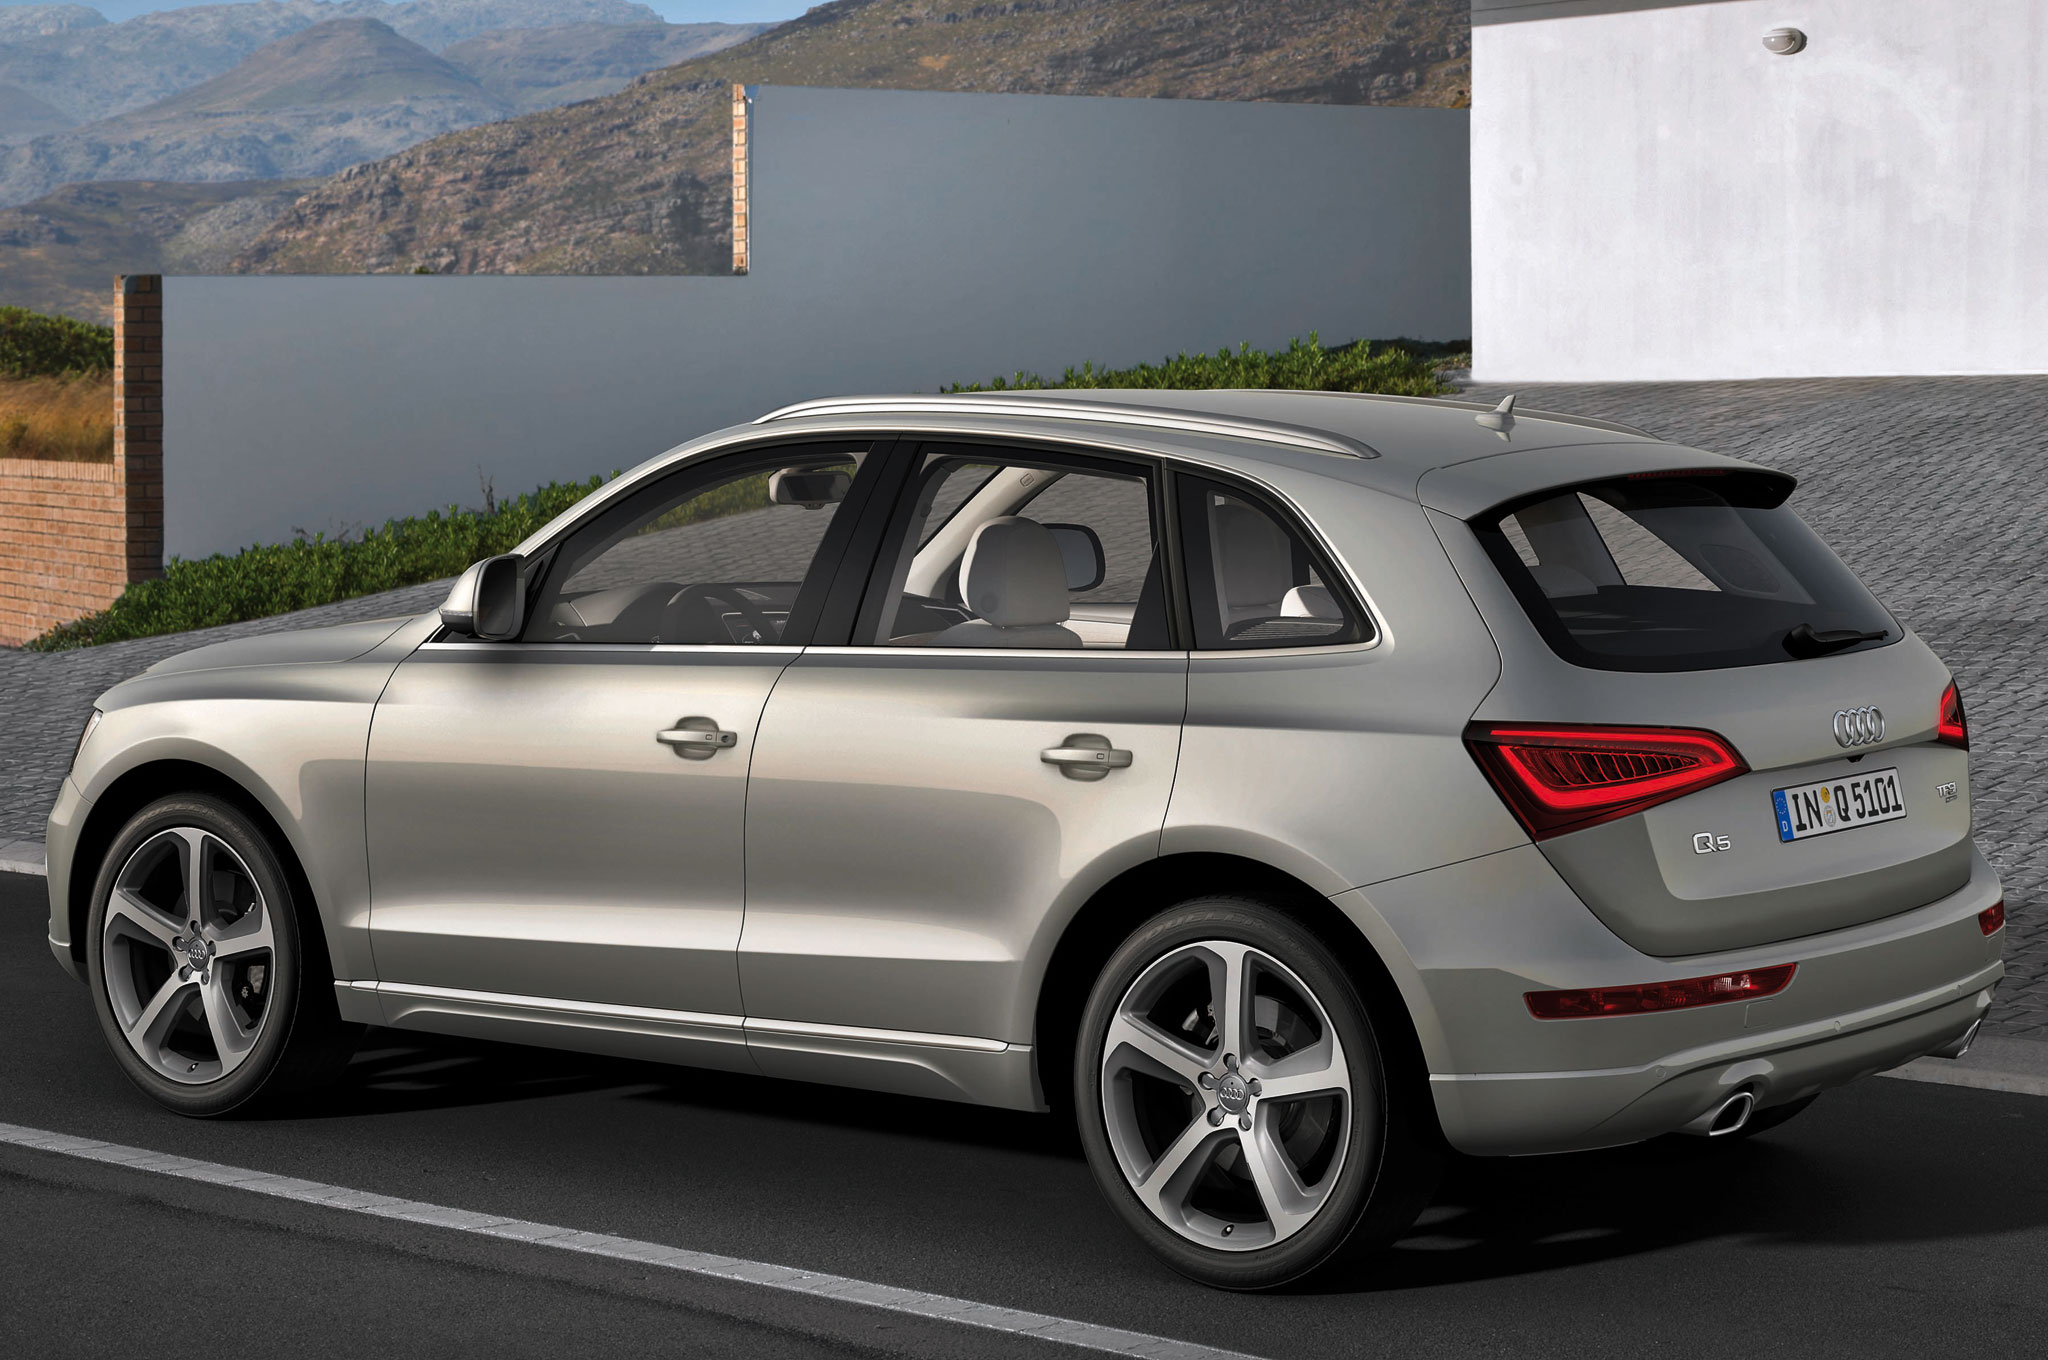 2015 audi sq5 information and photos zombiedrive. Black Bedroom Furniture Sets. Home Design Ideas